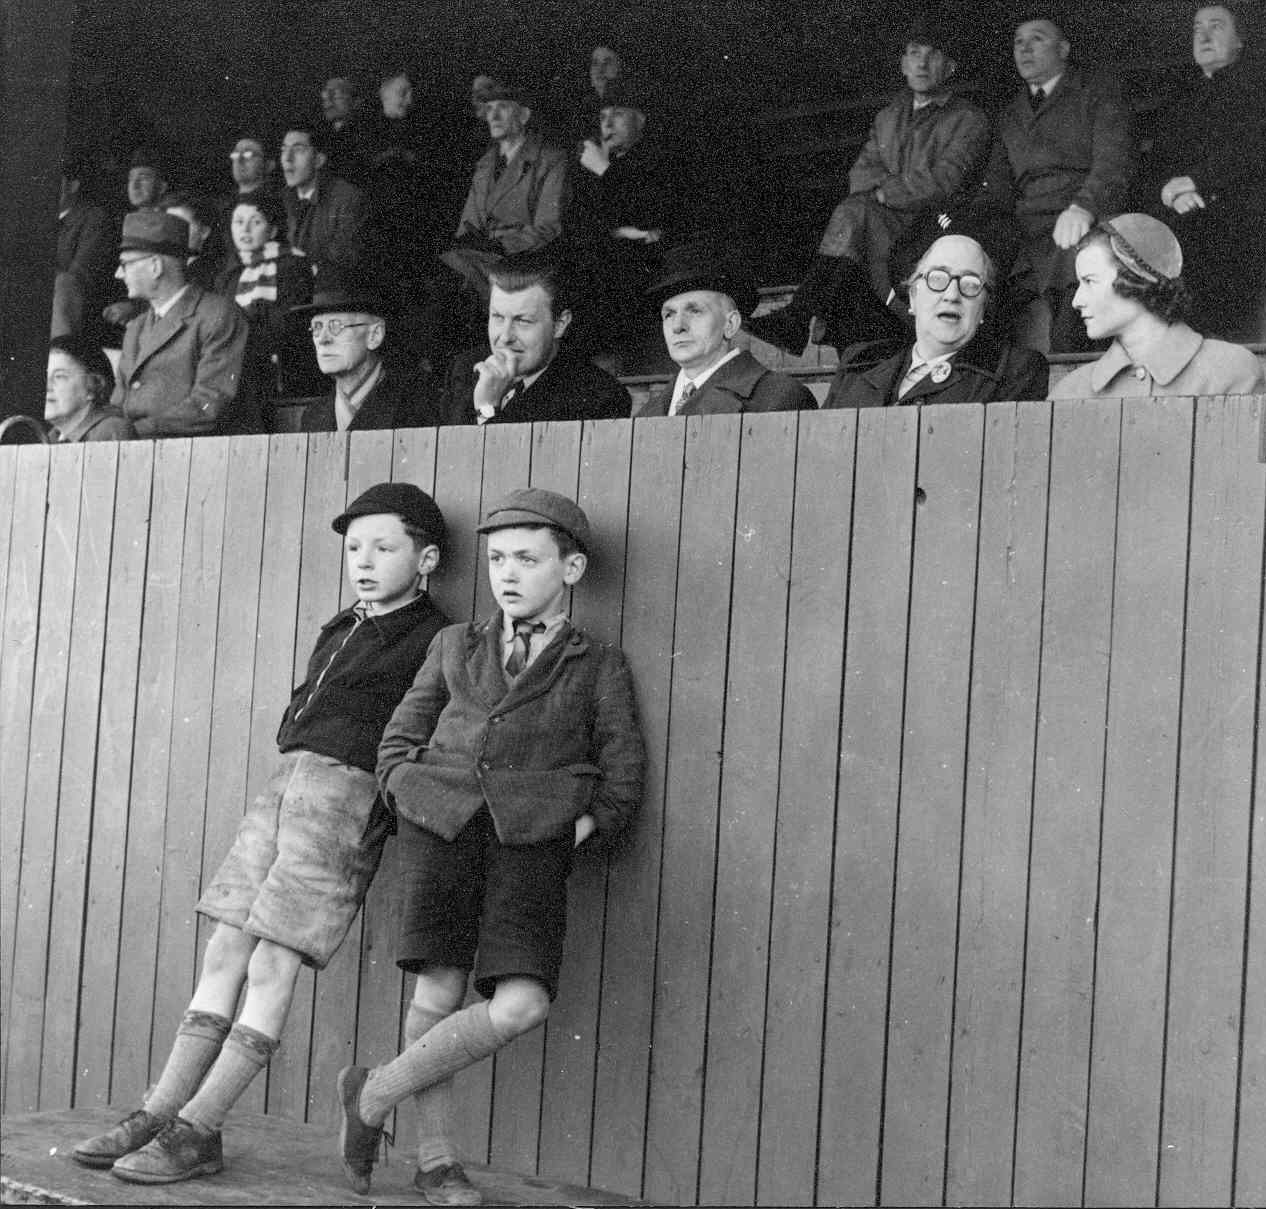 Spectators including Lord Derby & Councillor Rainford at Cables Football match, 1951